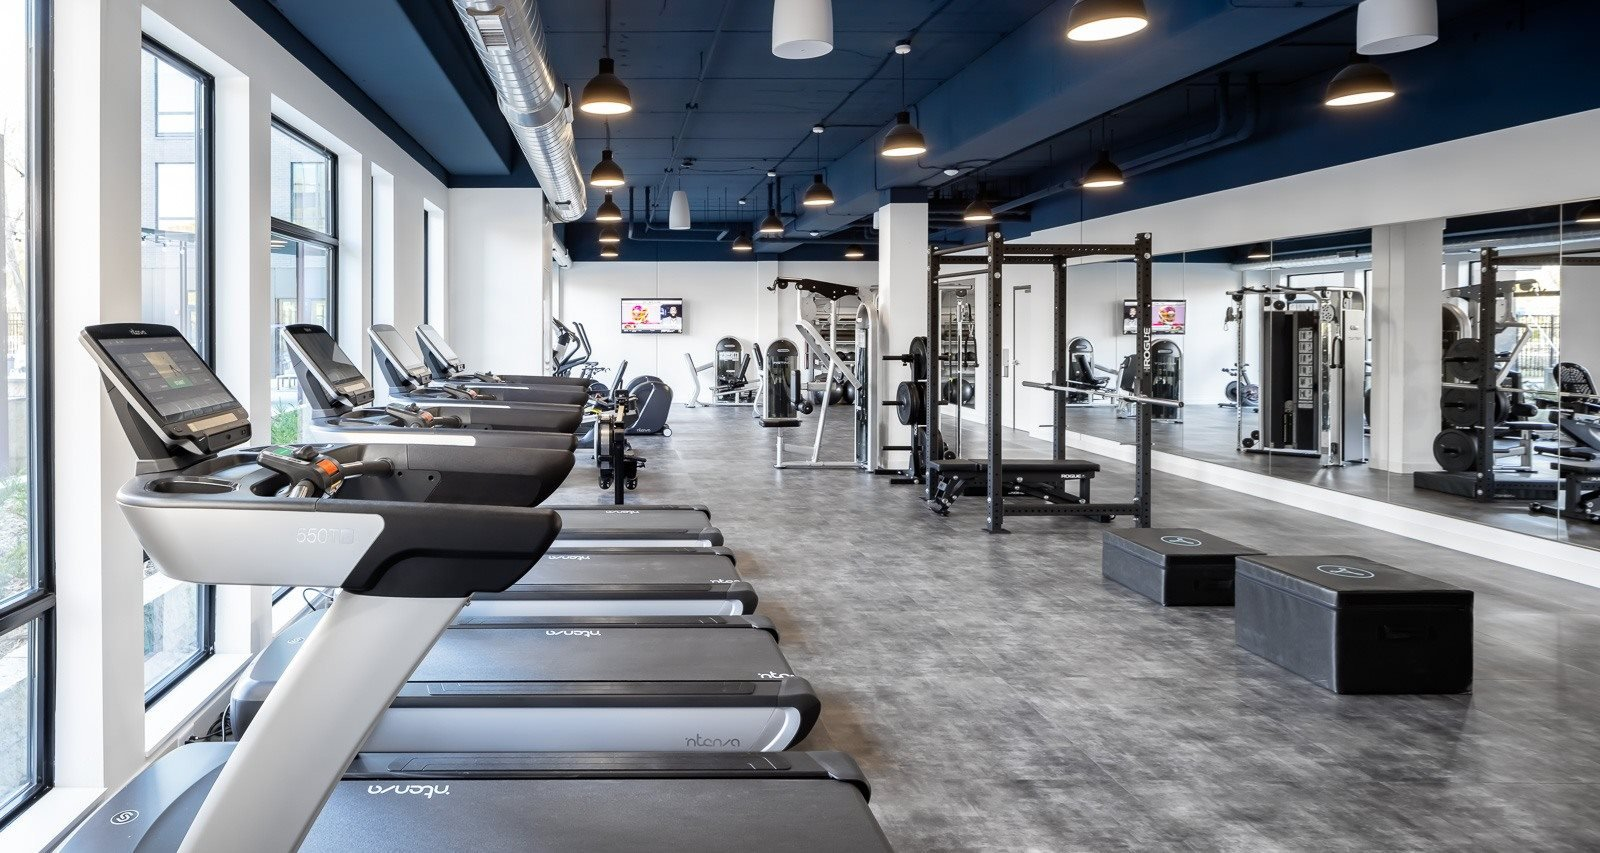 Treadmills and mirror in forefront of gym for apartment residents